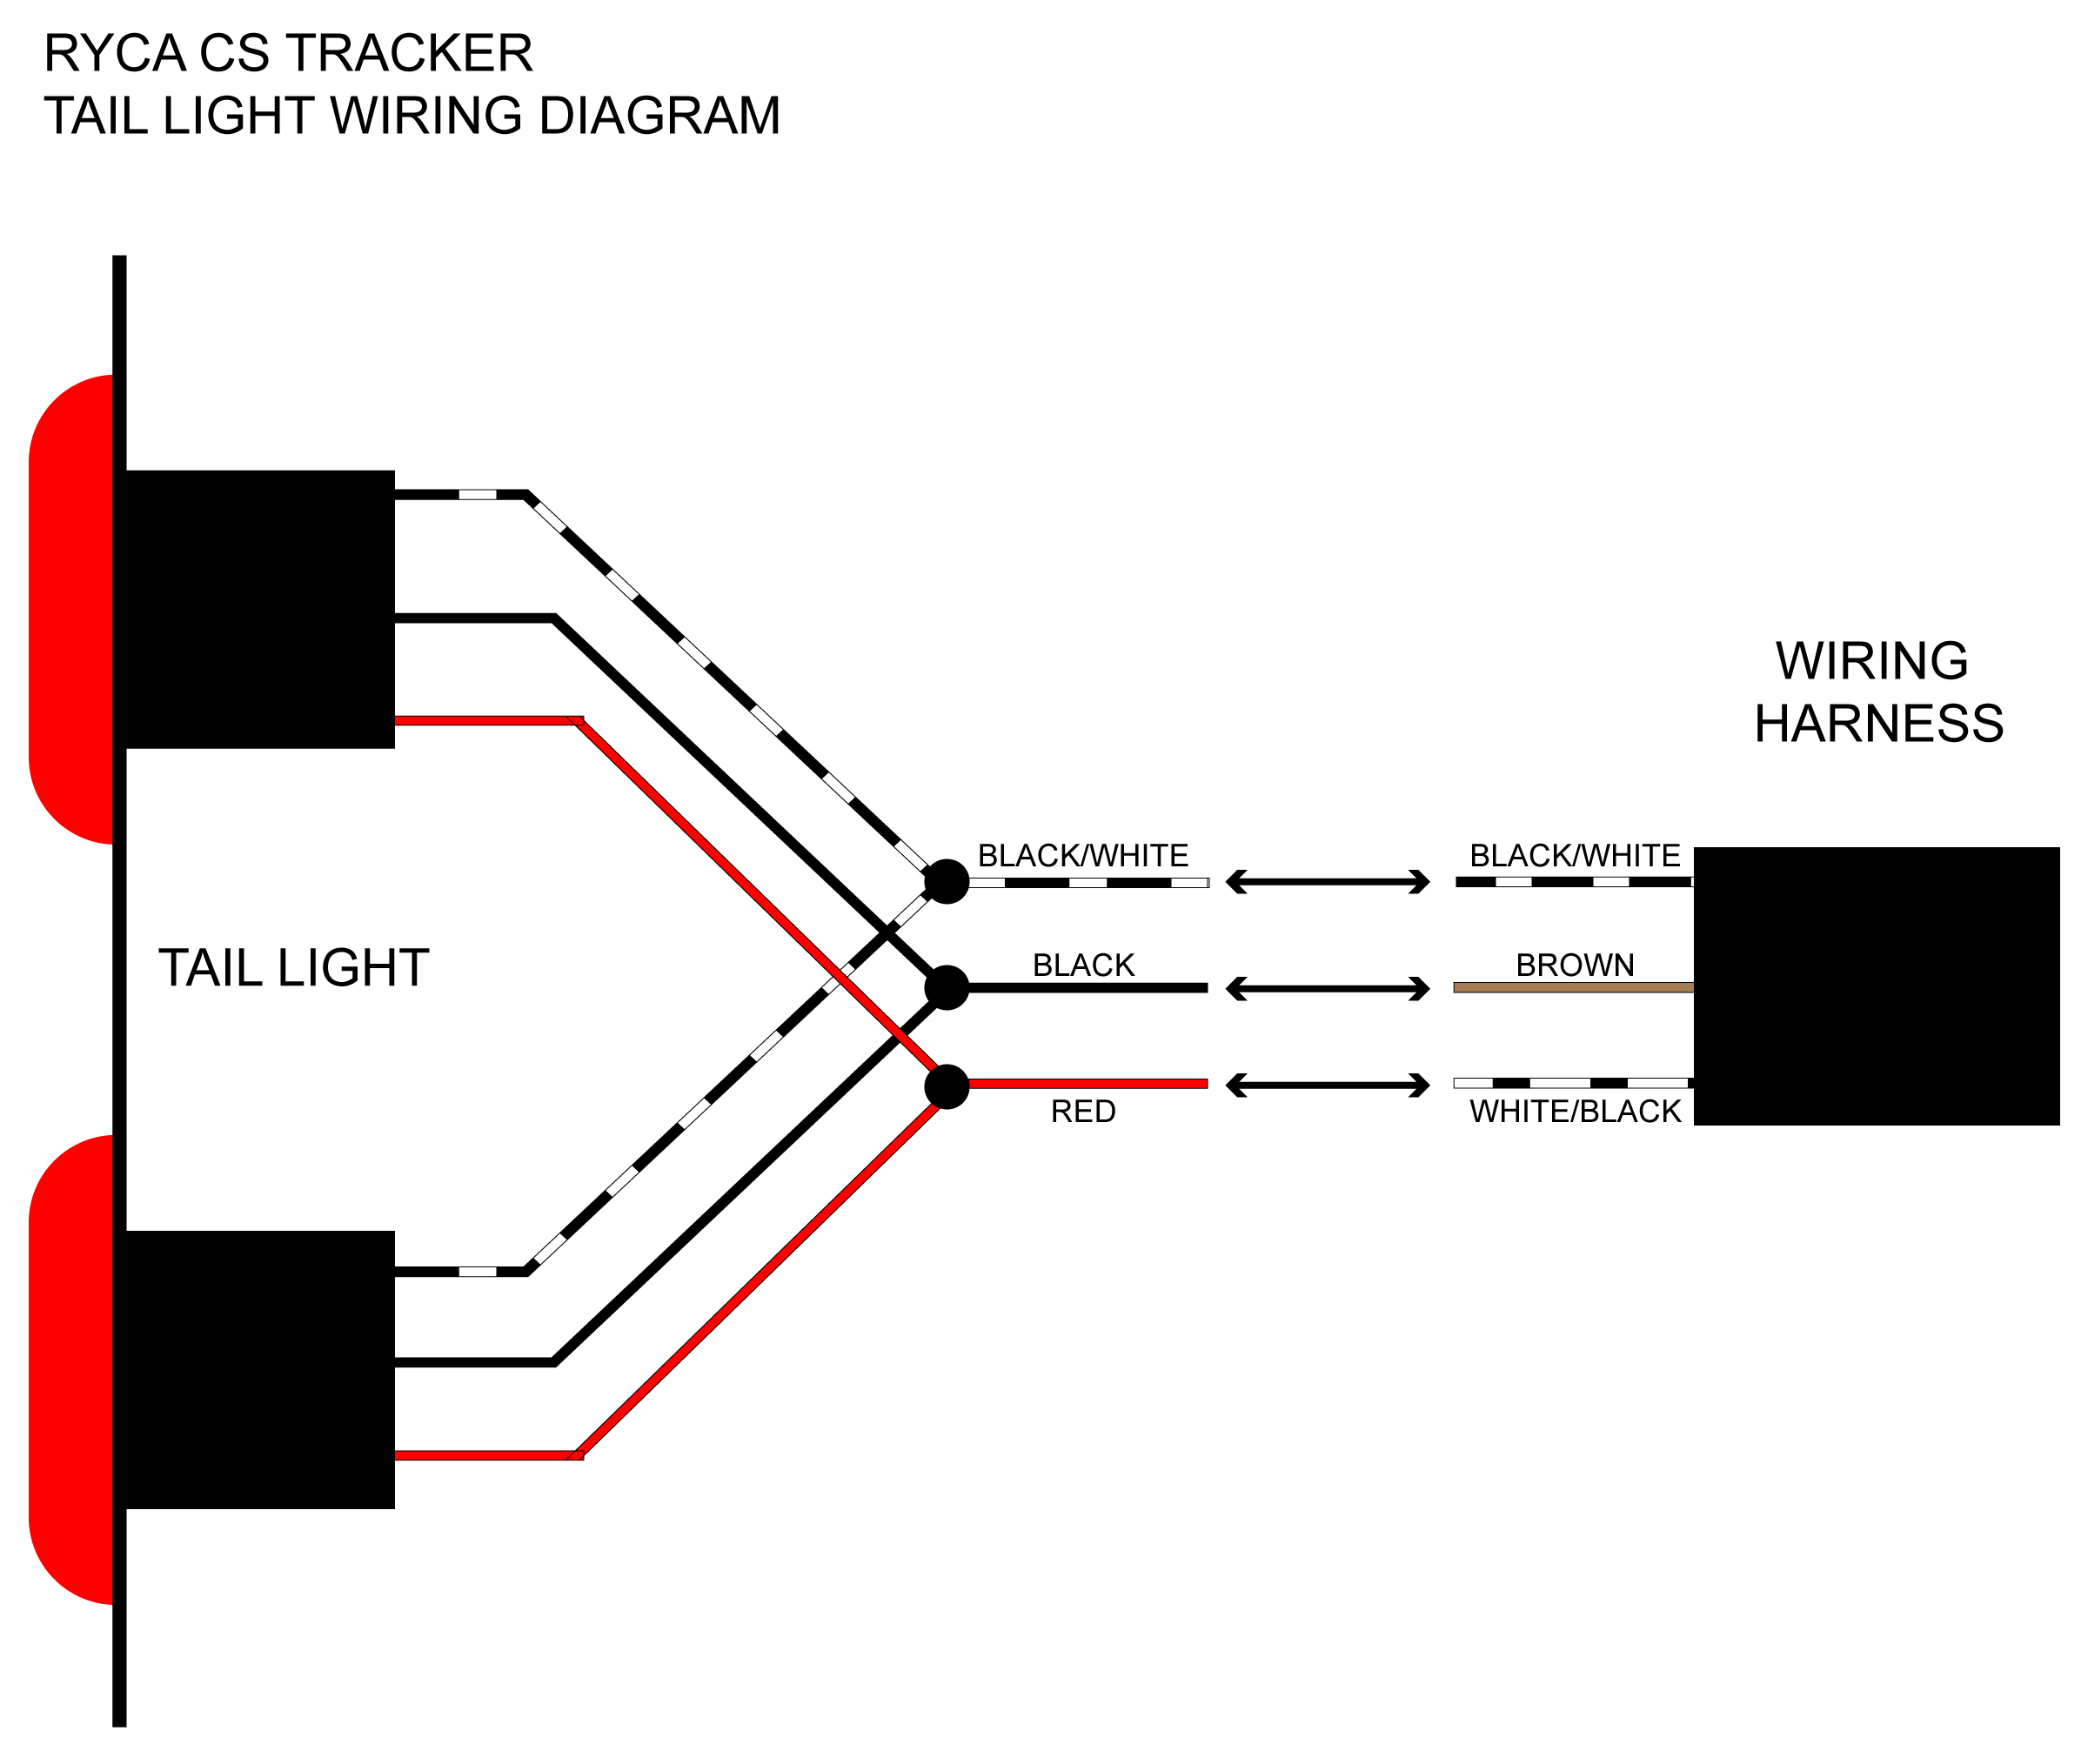 3 Wire Trailer Diagram - Schema Wiring Diagram - 4 Prong Trailer Wiring Diagram